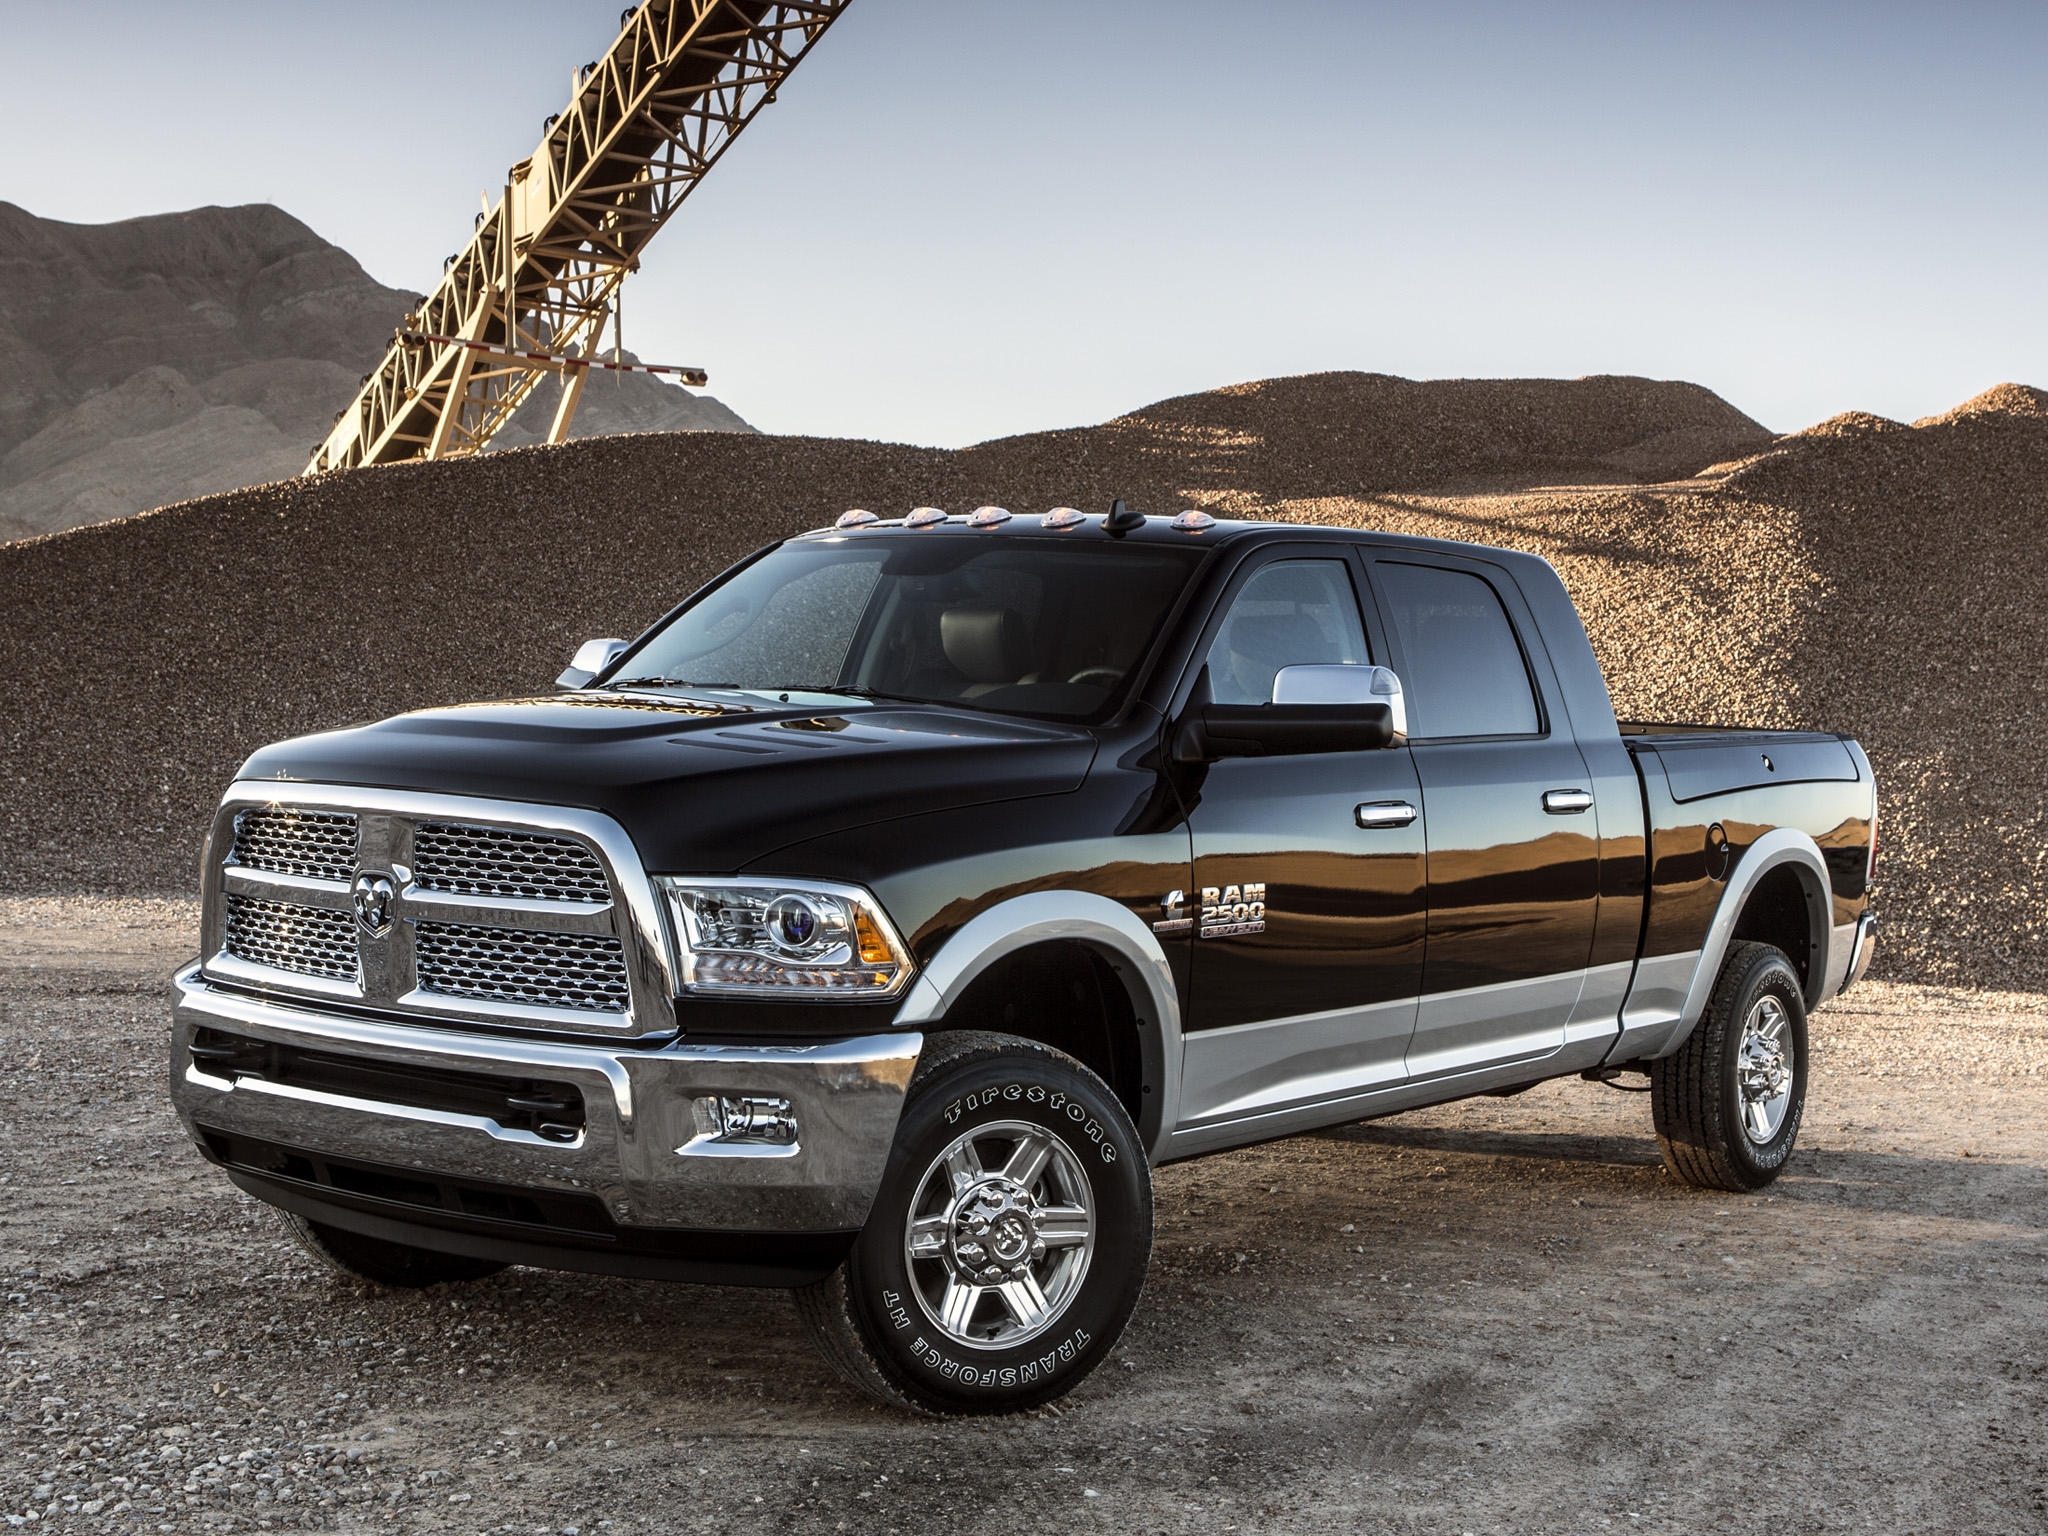 Dodge Ram 2500 picture # 96068 | Dodge photo gallery | CarsBase.com